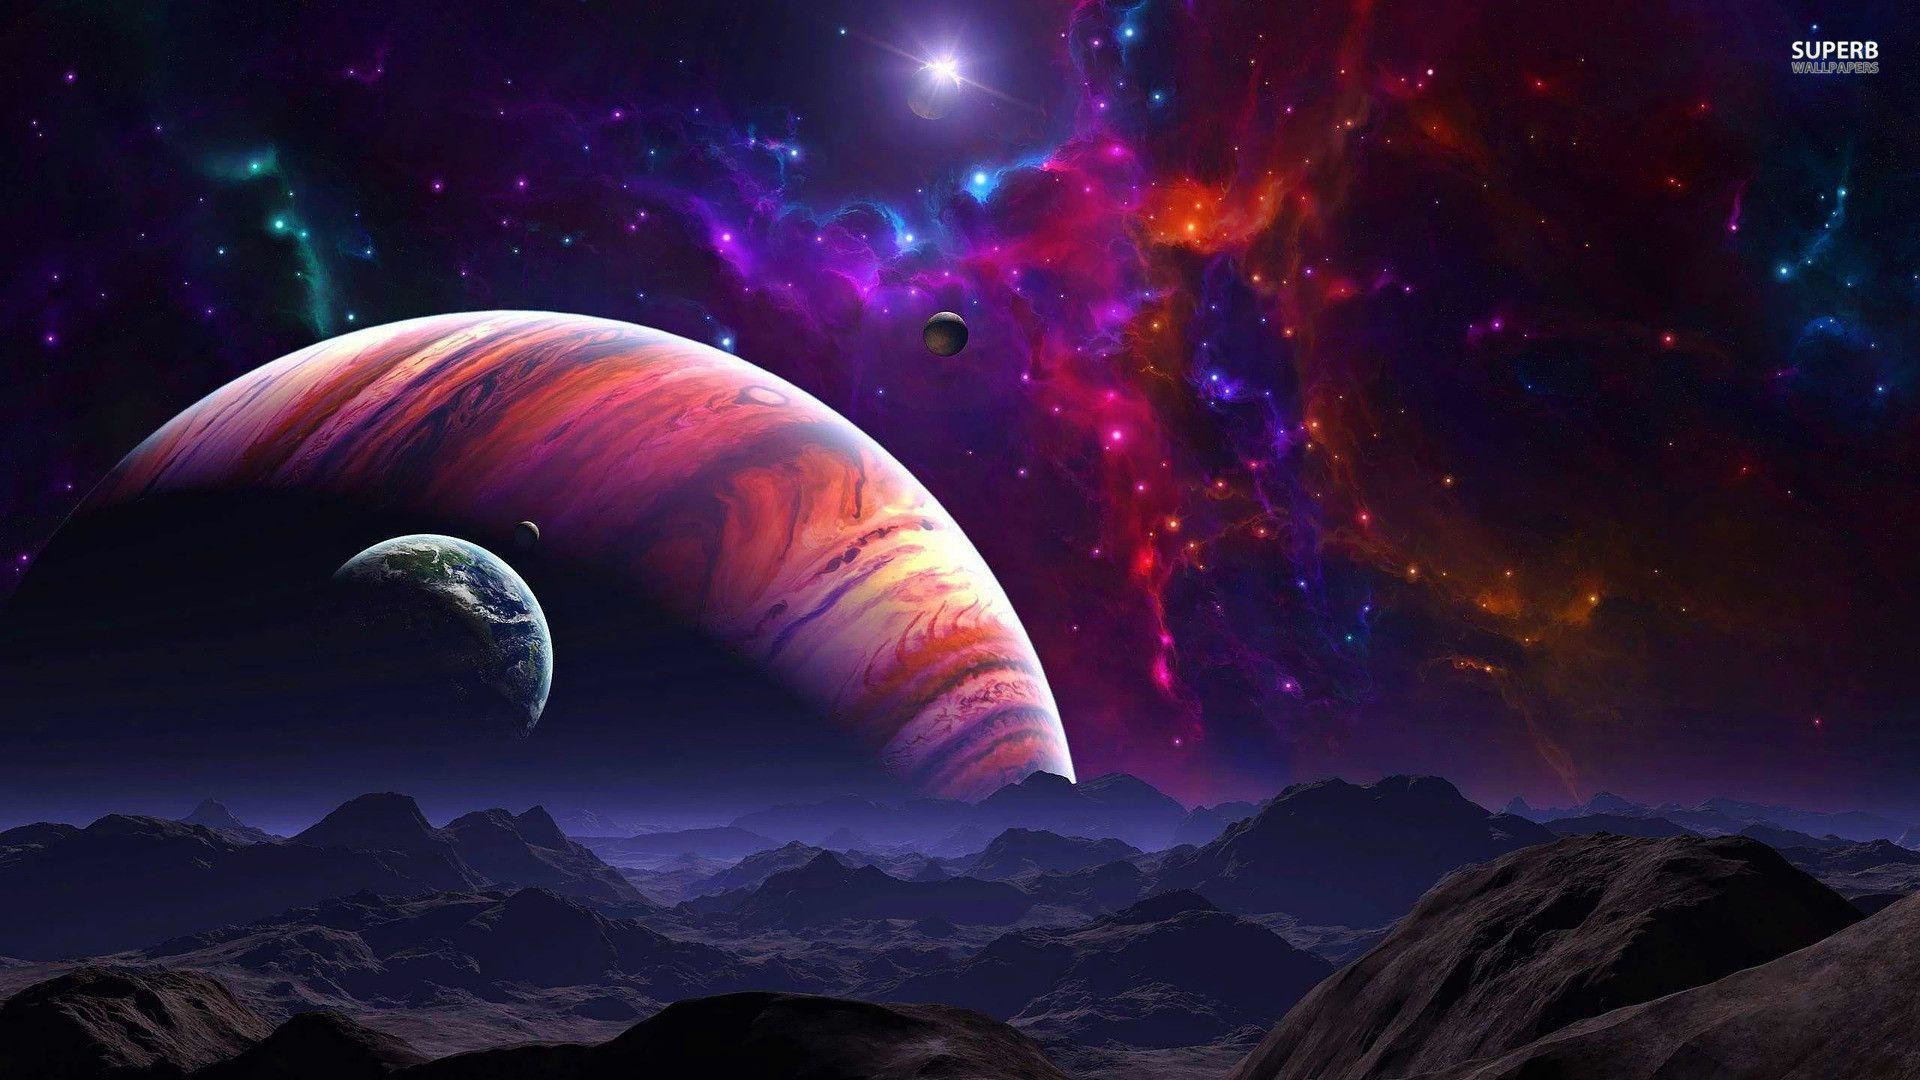 Purple Space Wallpaper Pictures 5 HD Wallpapers   lzamgs.